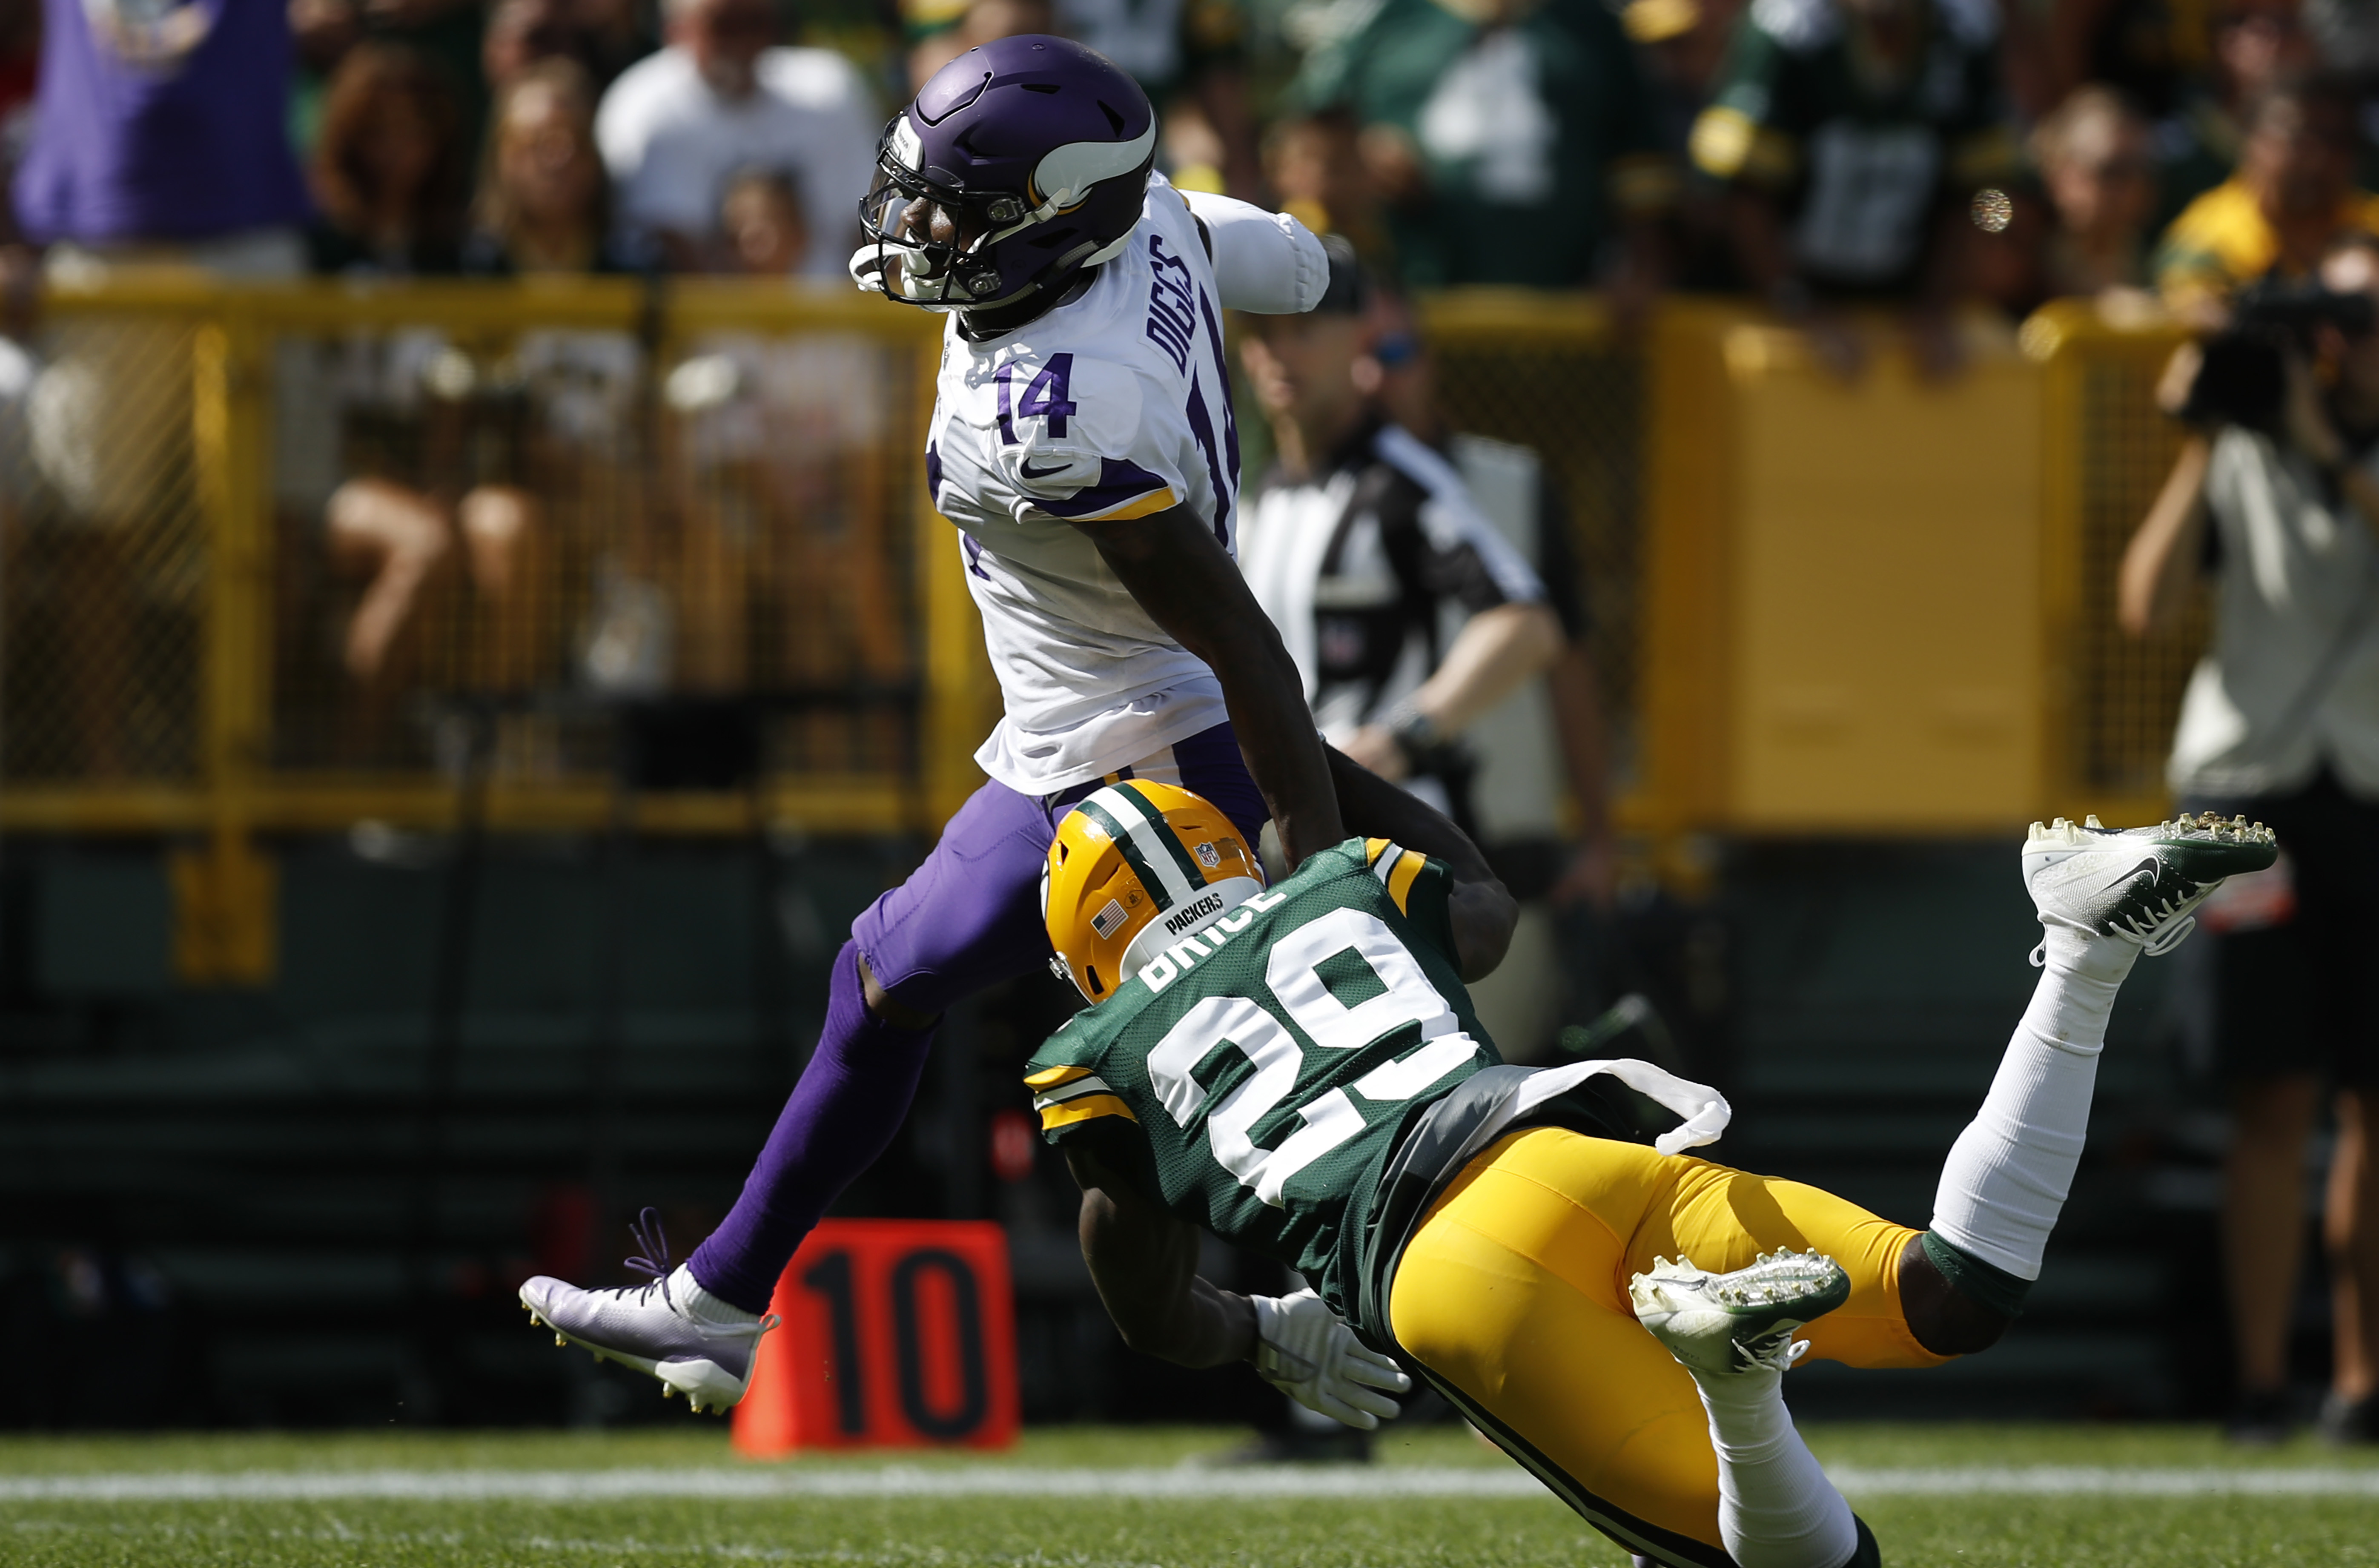 Minnesota Vikings wide receiver Stefon Diggs (14) broke Green Bay Packers defensive back Kentrell Brice (29) tackle scoring on a 75 yard forth quarter touchdown Sunday September 16, 2018 in Green Bay, WI. ] JERRY HOLT • jerry.holt@startribune.com.